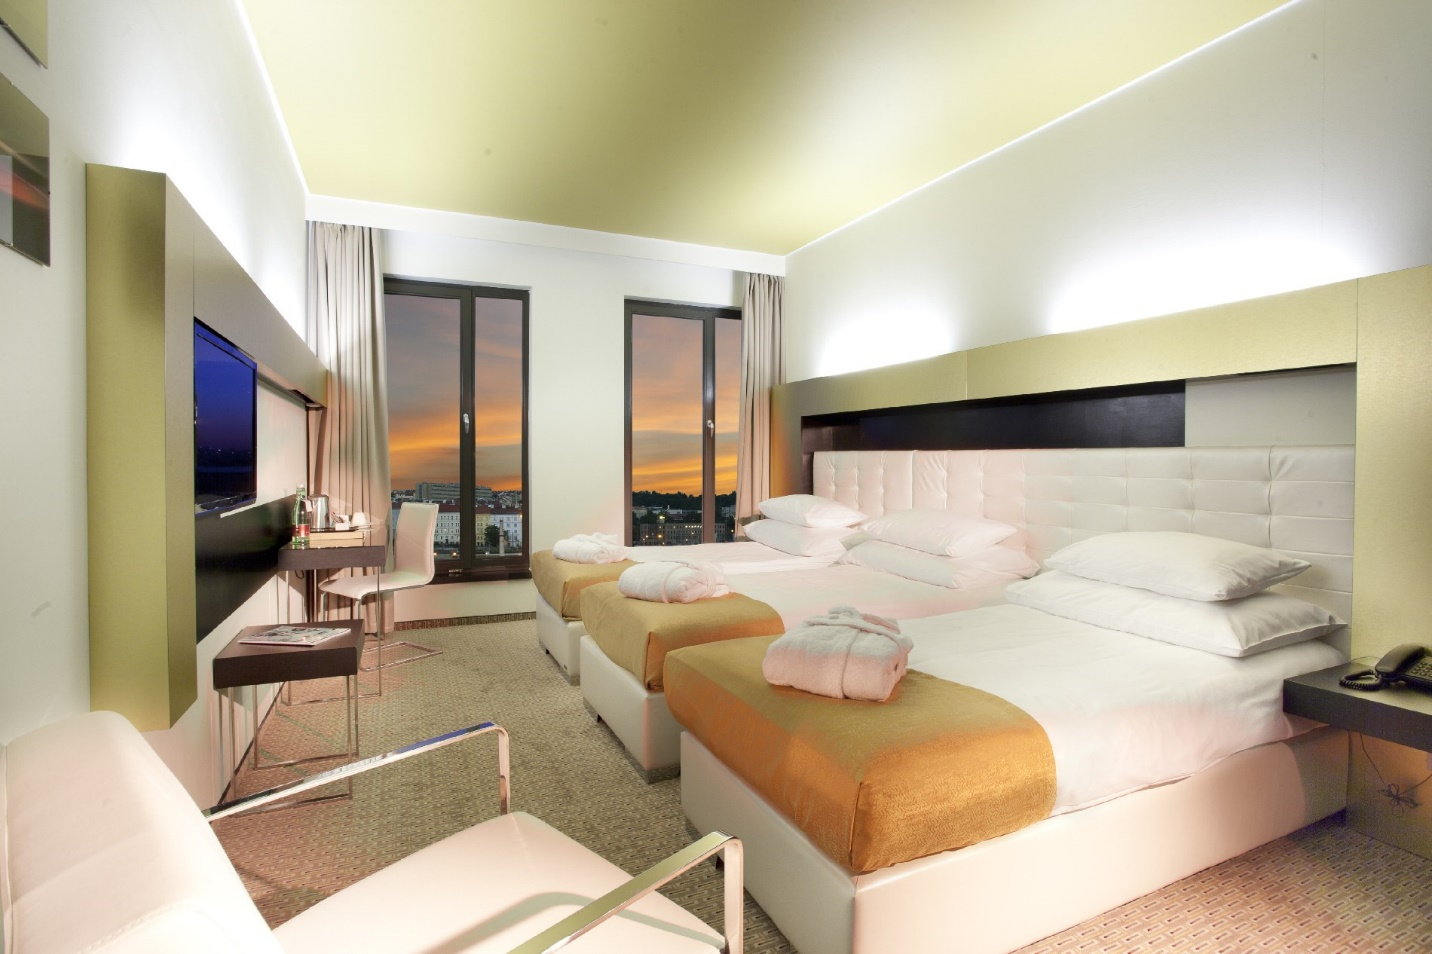 Triple hotel room design